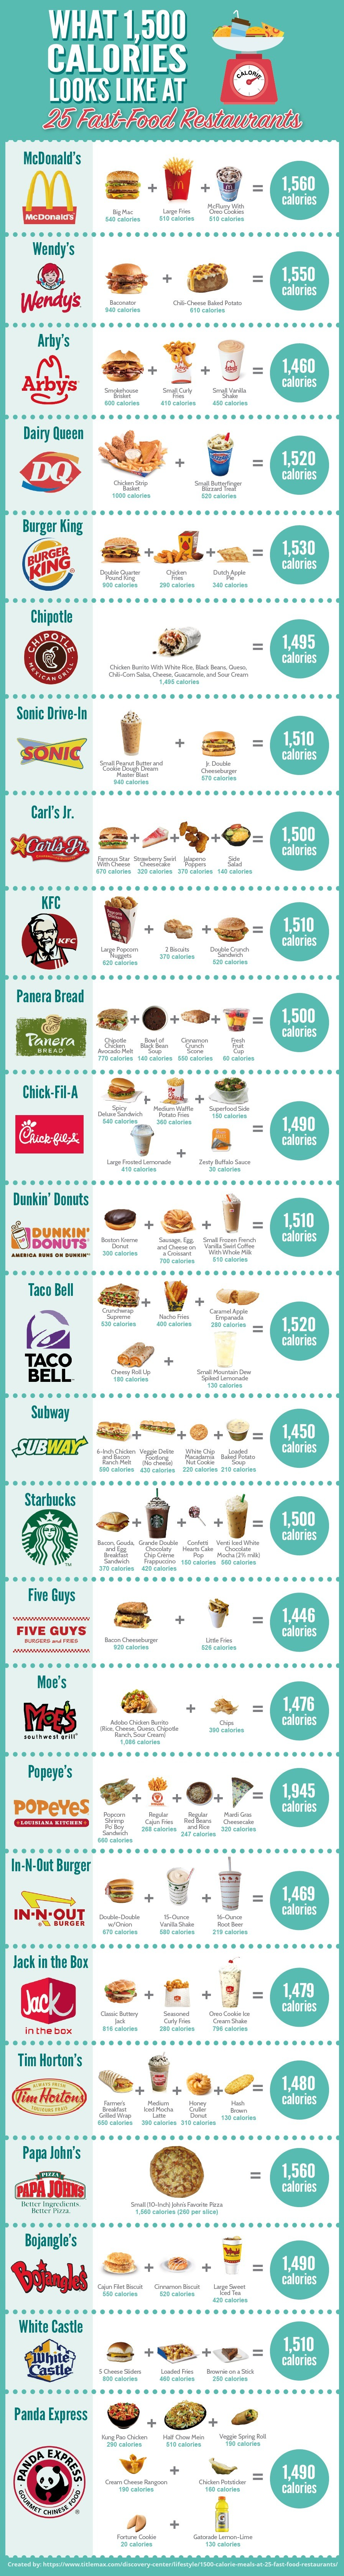 What 1500 Calories Looks Like at 25 Fast Food Restaurants. .. 660+268+247+320=1945 That's some creative math right there.